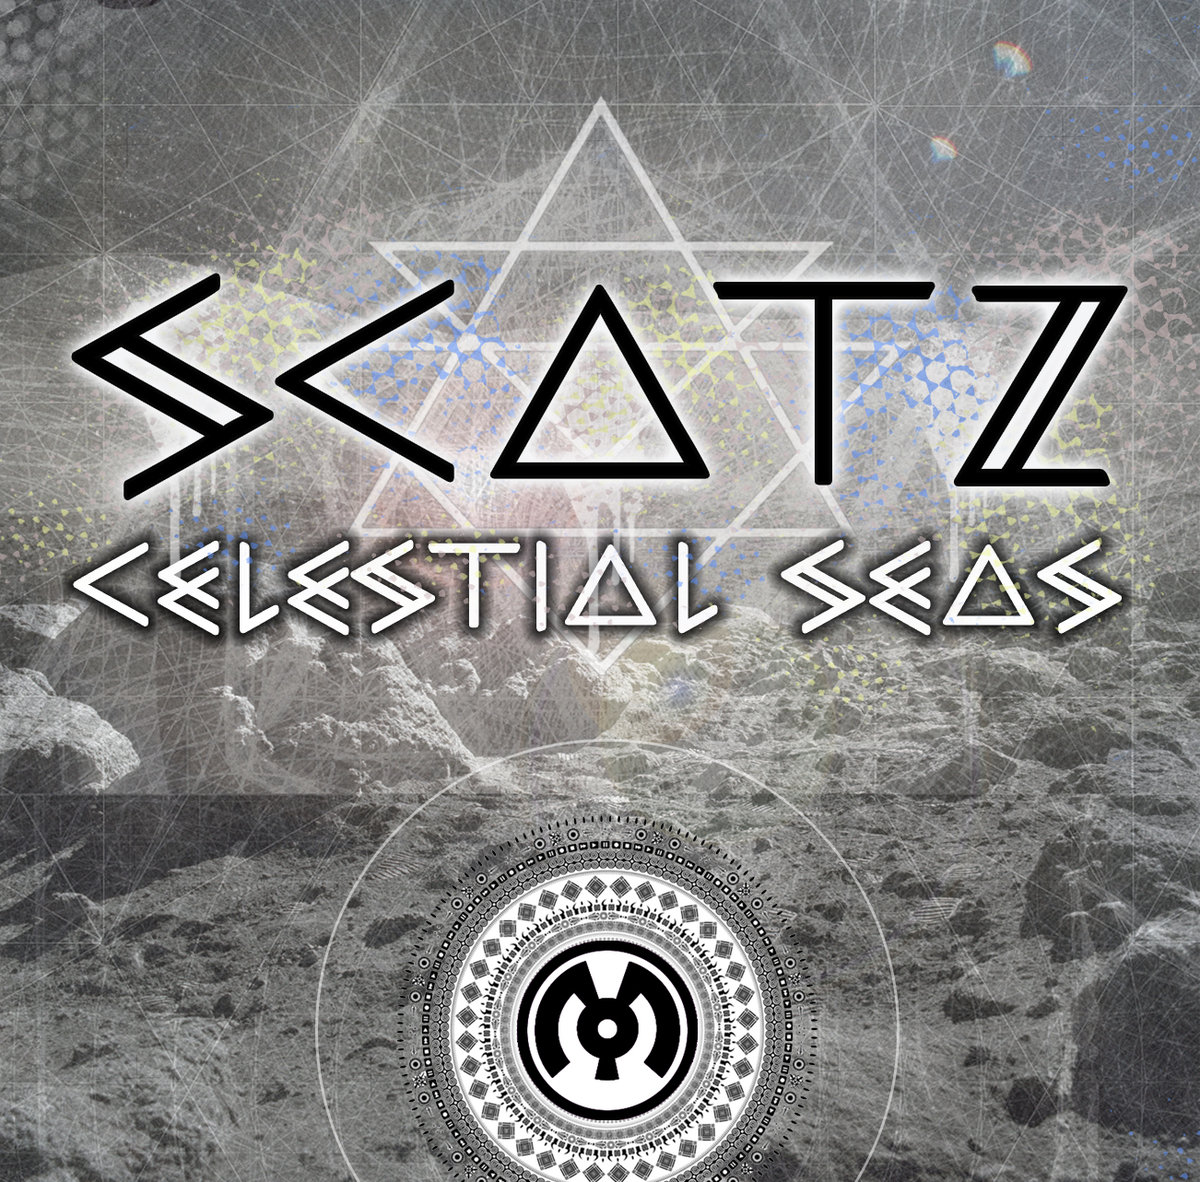 Scatz - Swick @ 'Celestial Seas' album (electronic, dubstep)